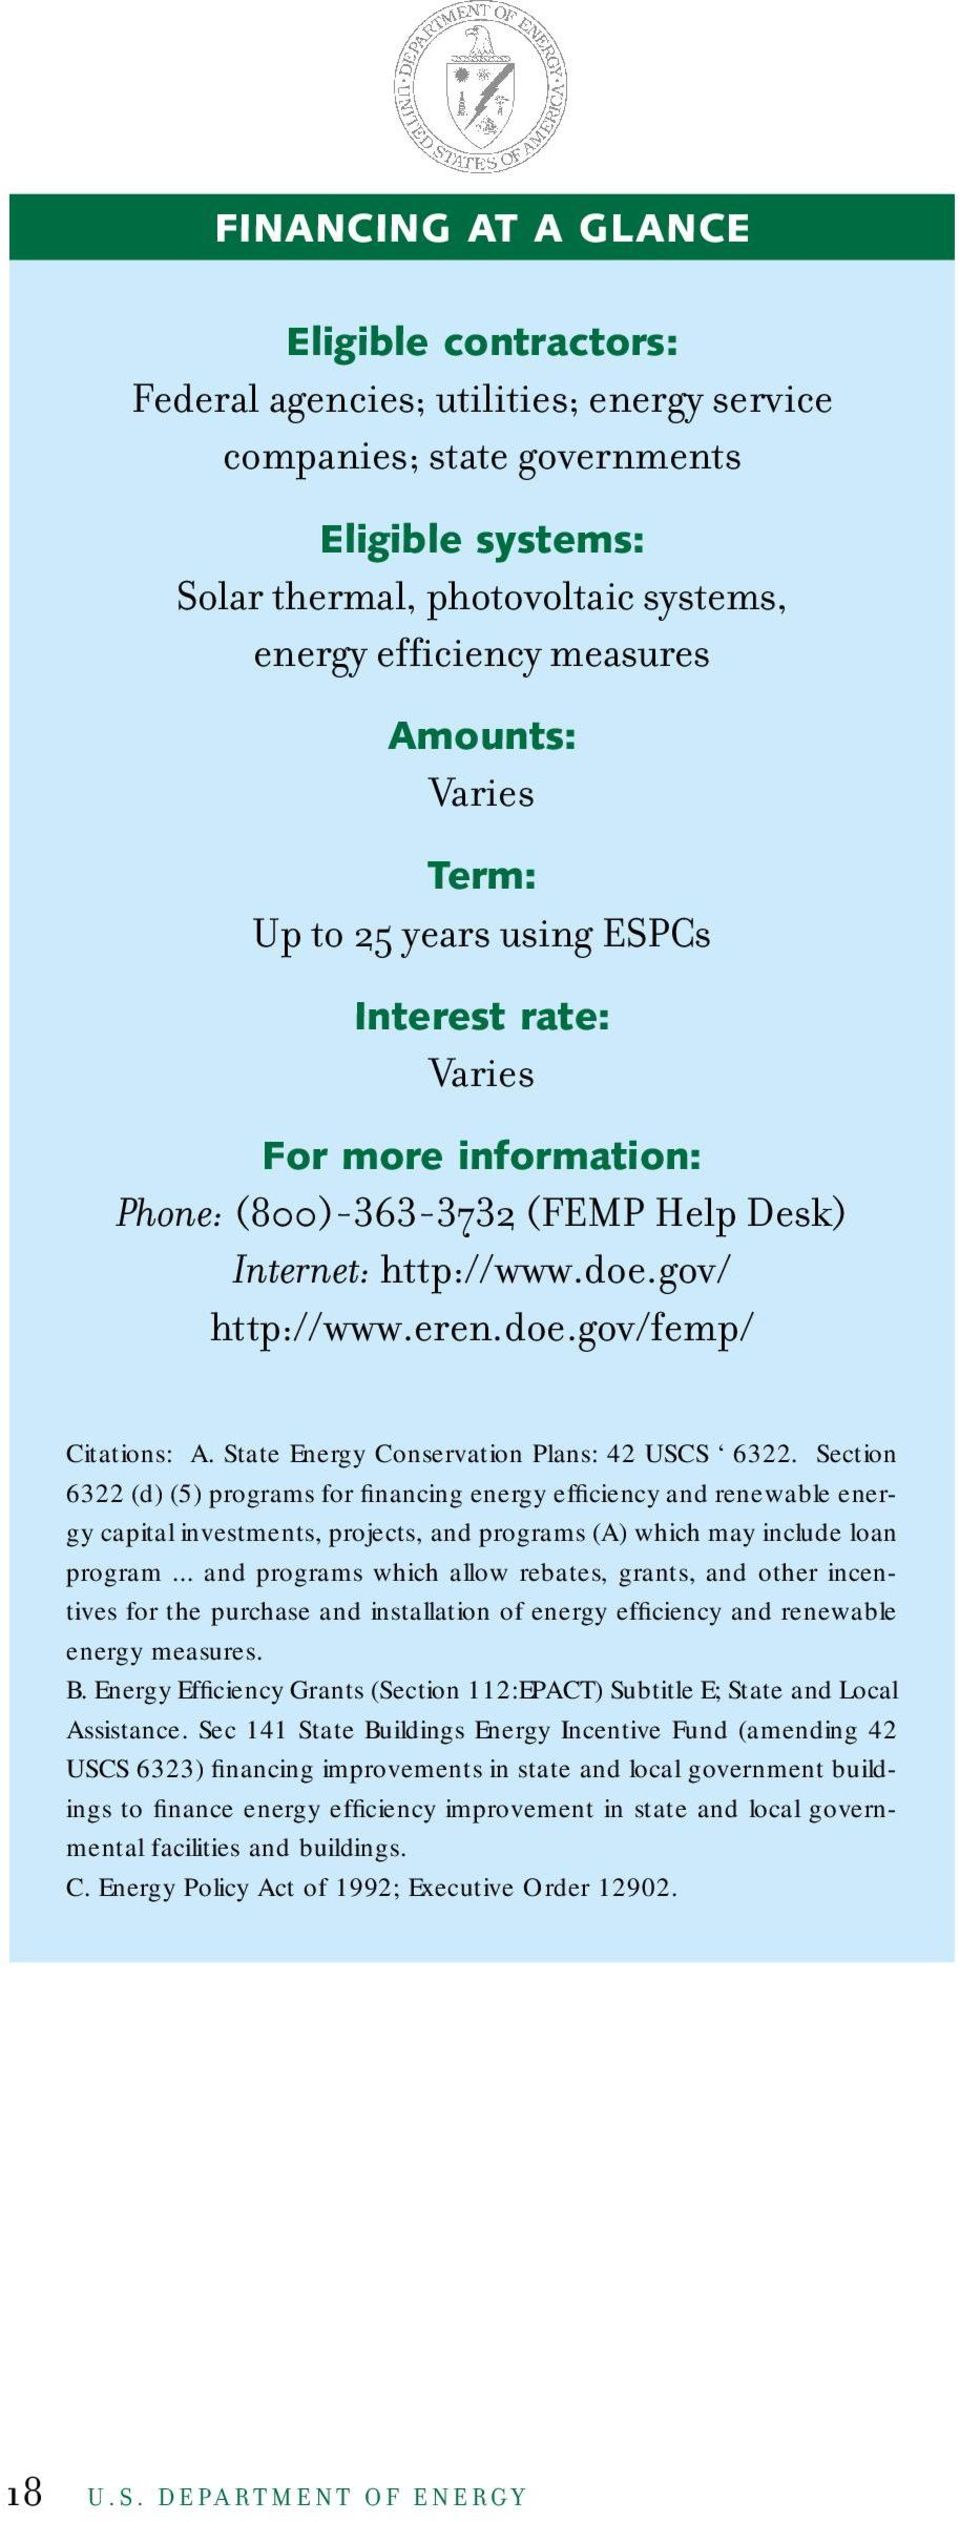 State Energy Conservation Plans: 42 USCS 6322.